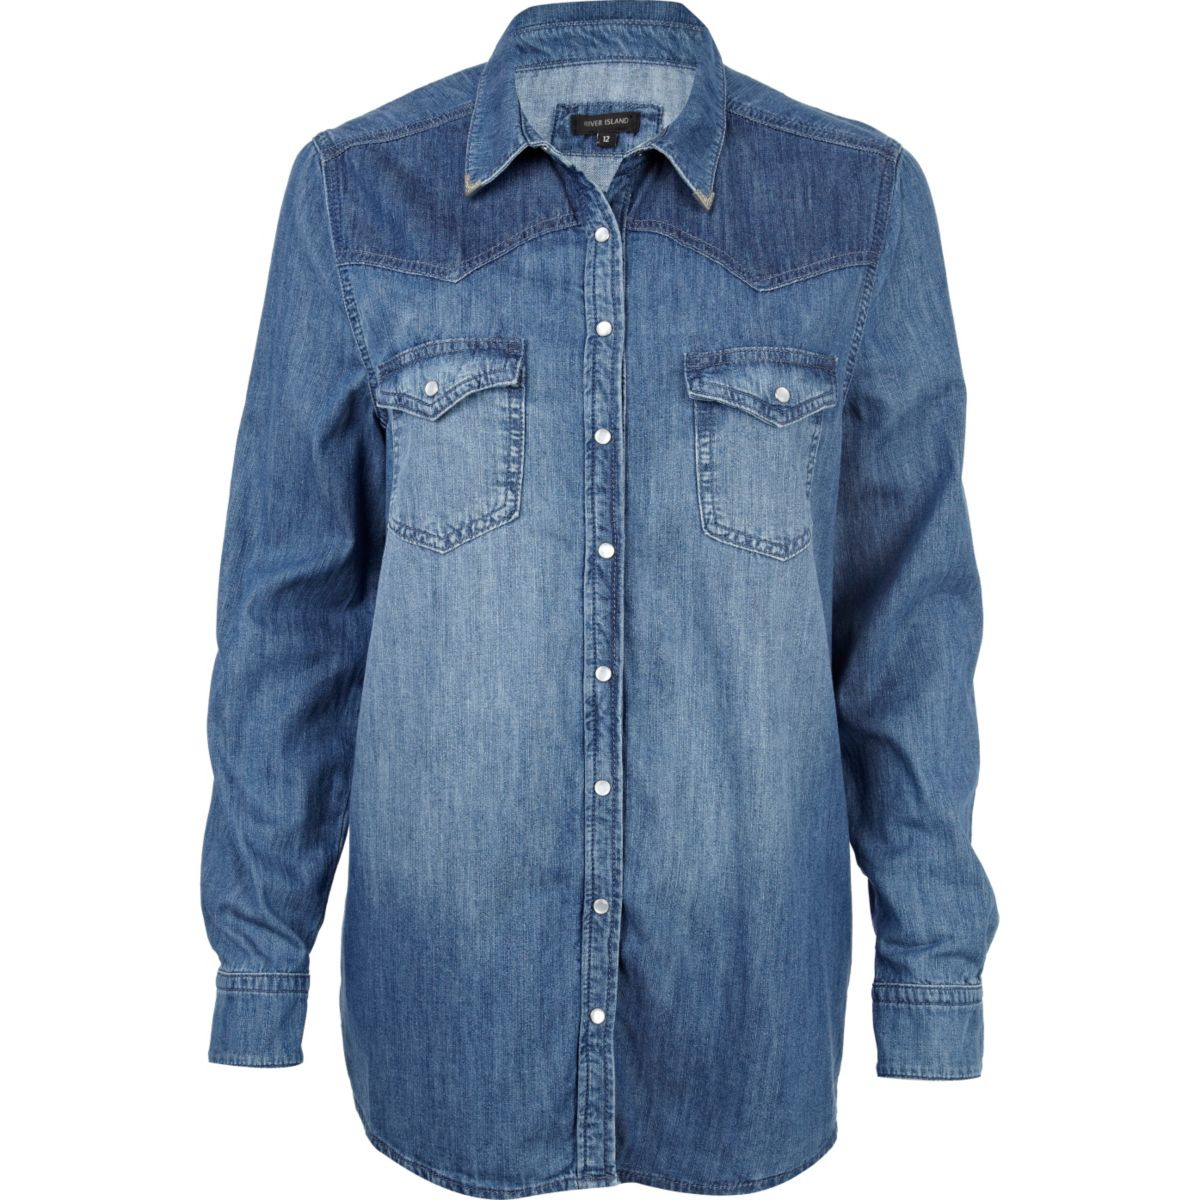 Mid wash denim shirt